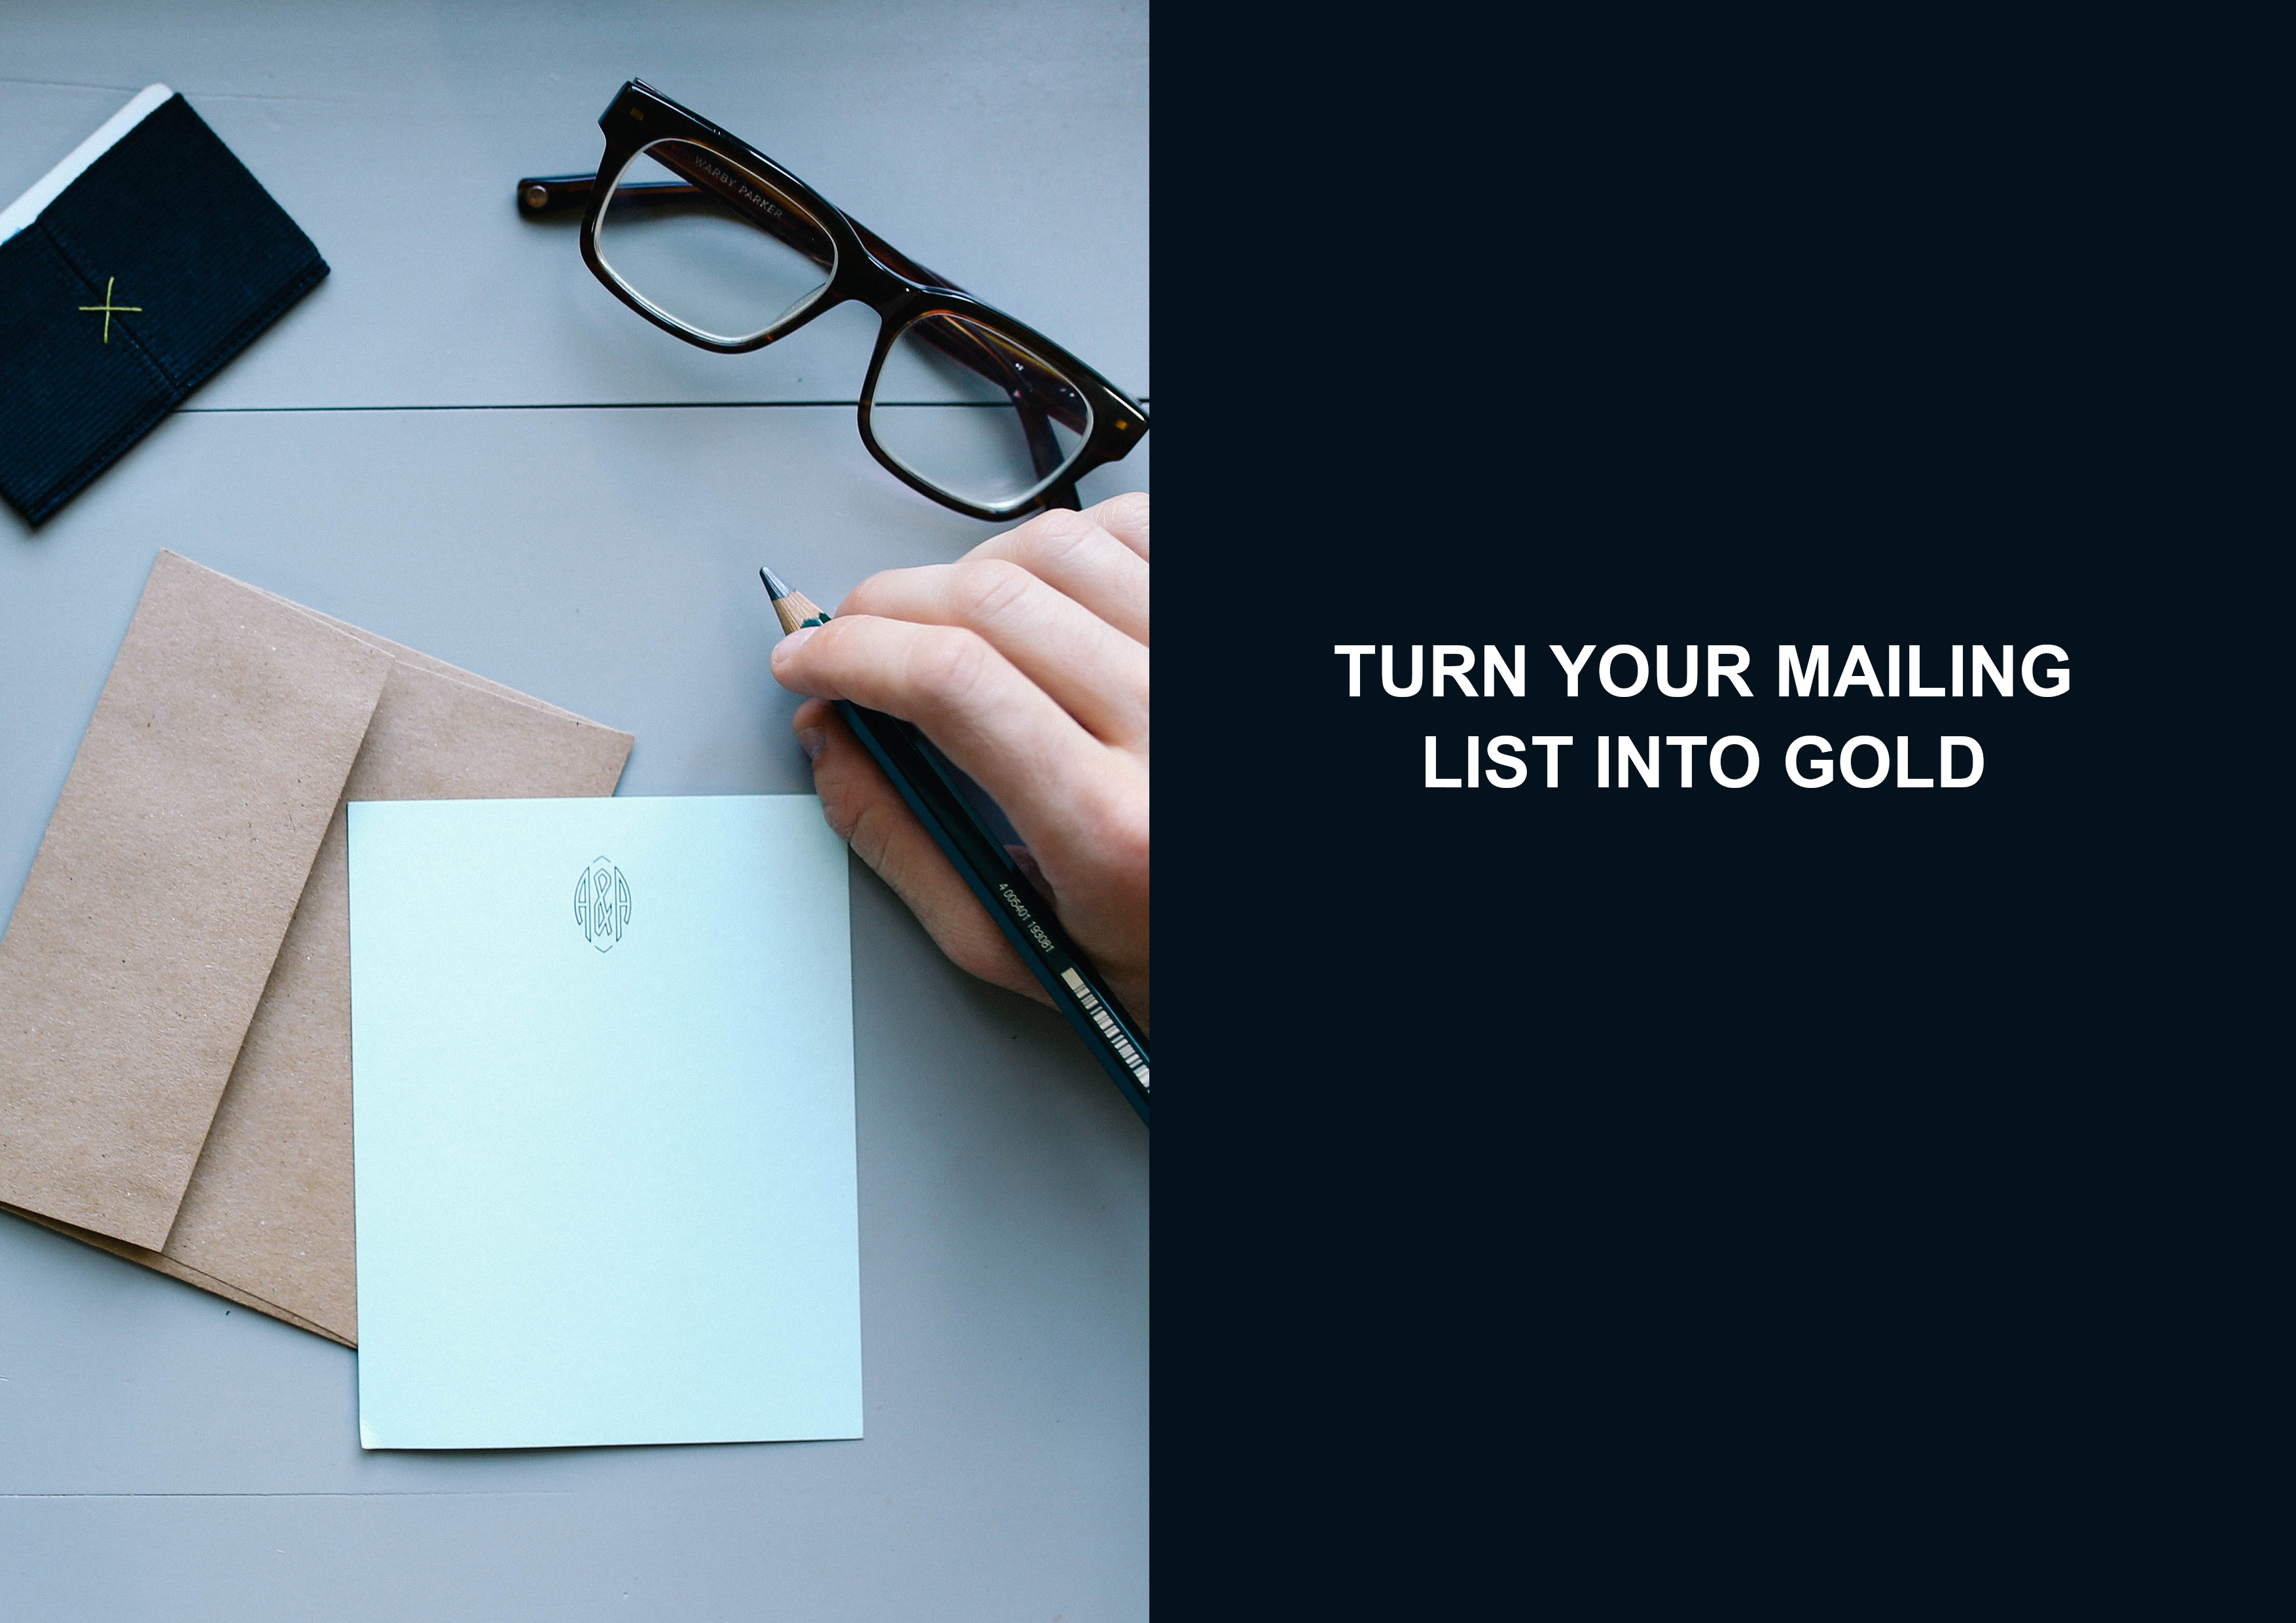 Turn Your Mailing List Into Gold